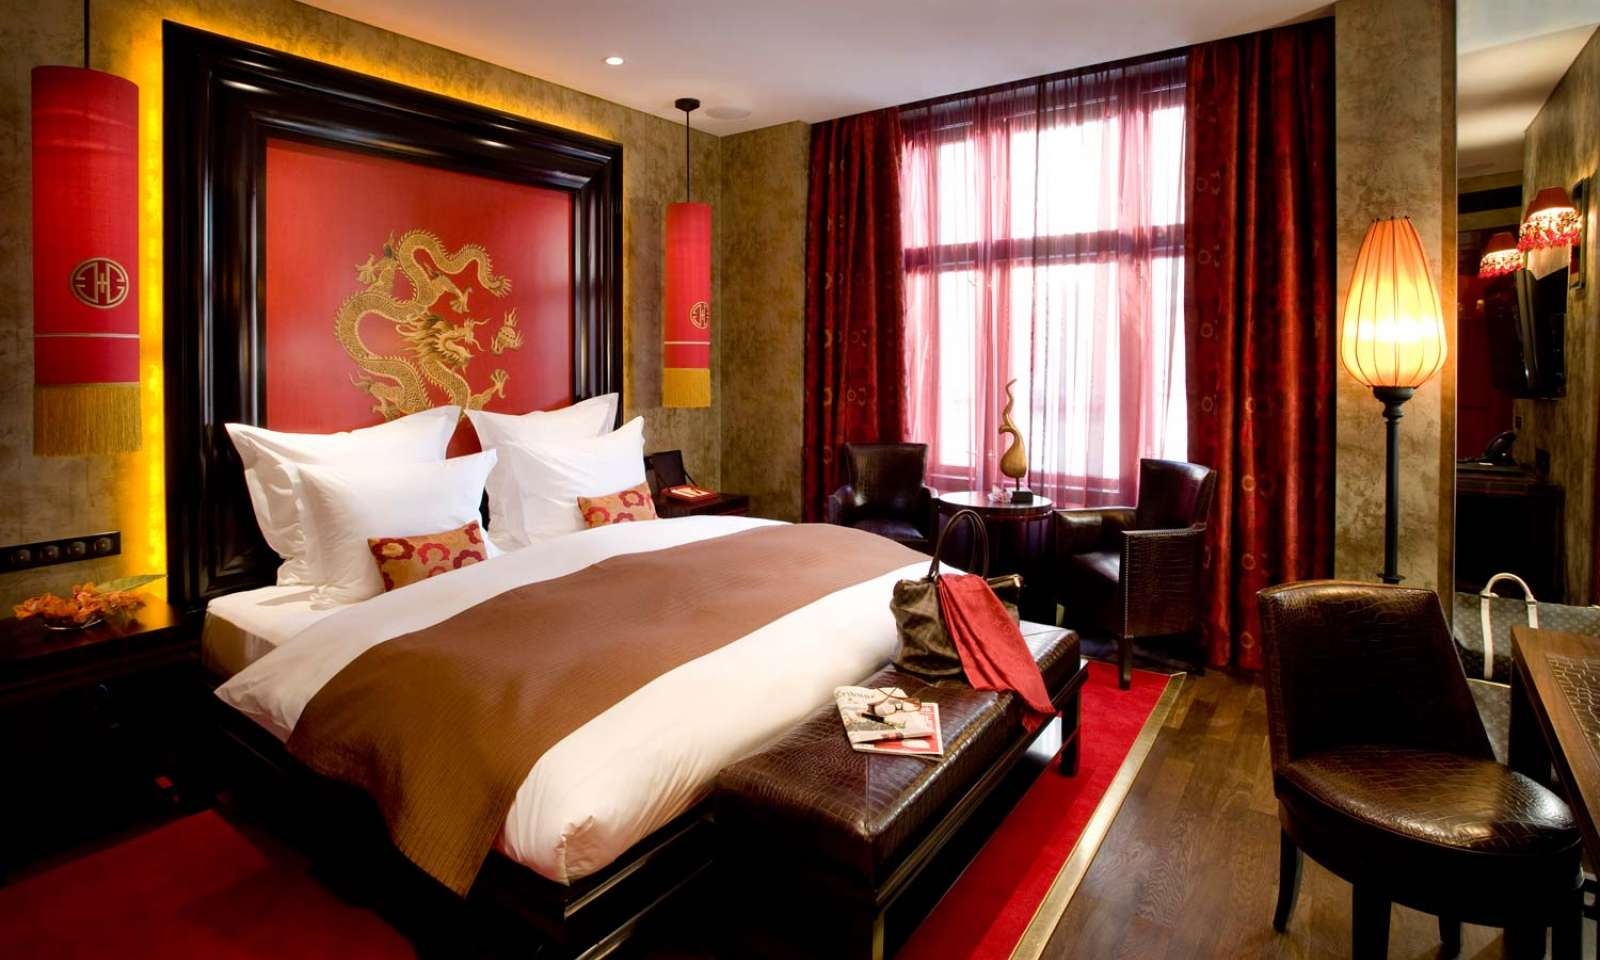 World visits 7 star hotels luxury rooms fantastic collection for Luxury hotel bedroom interior design